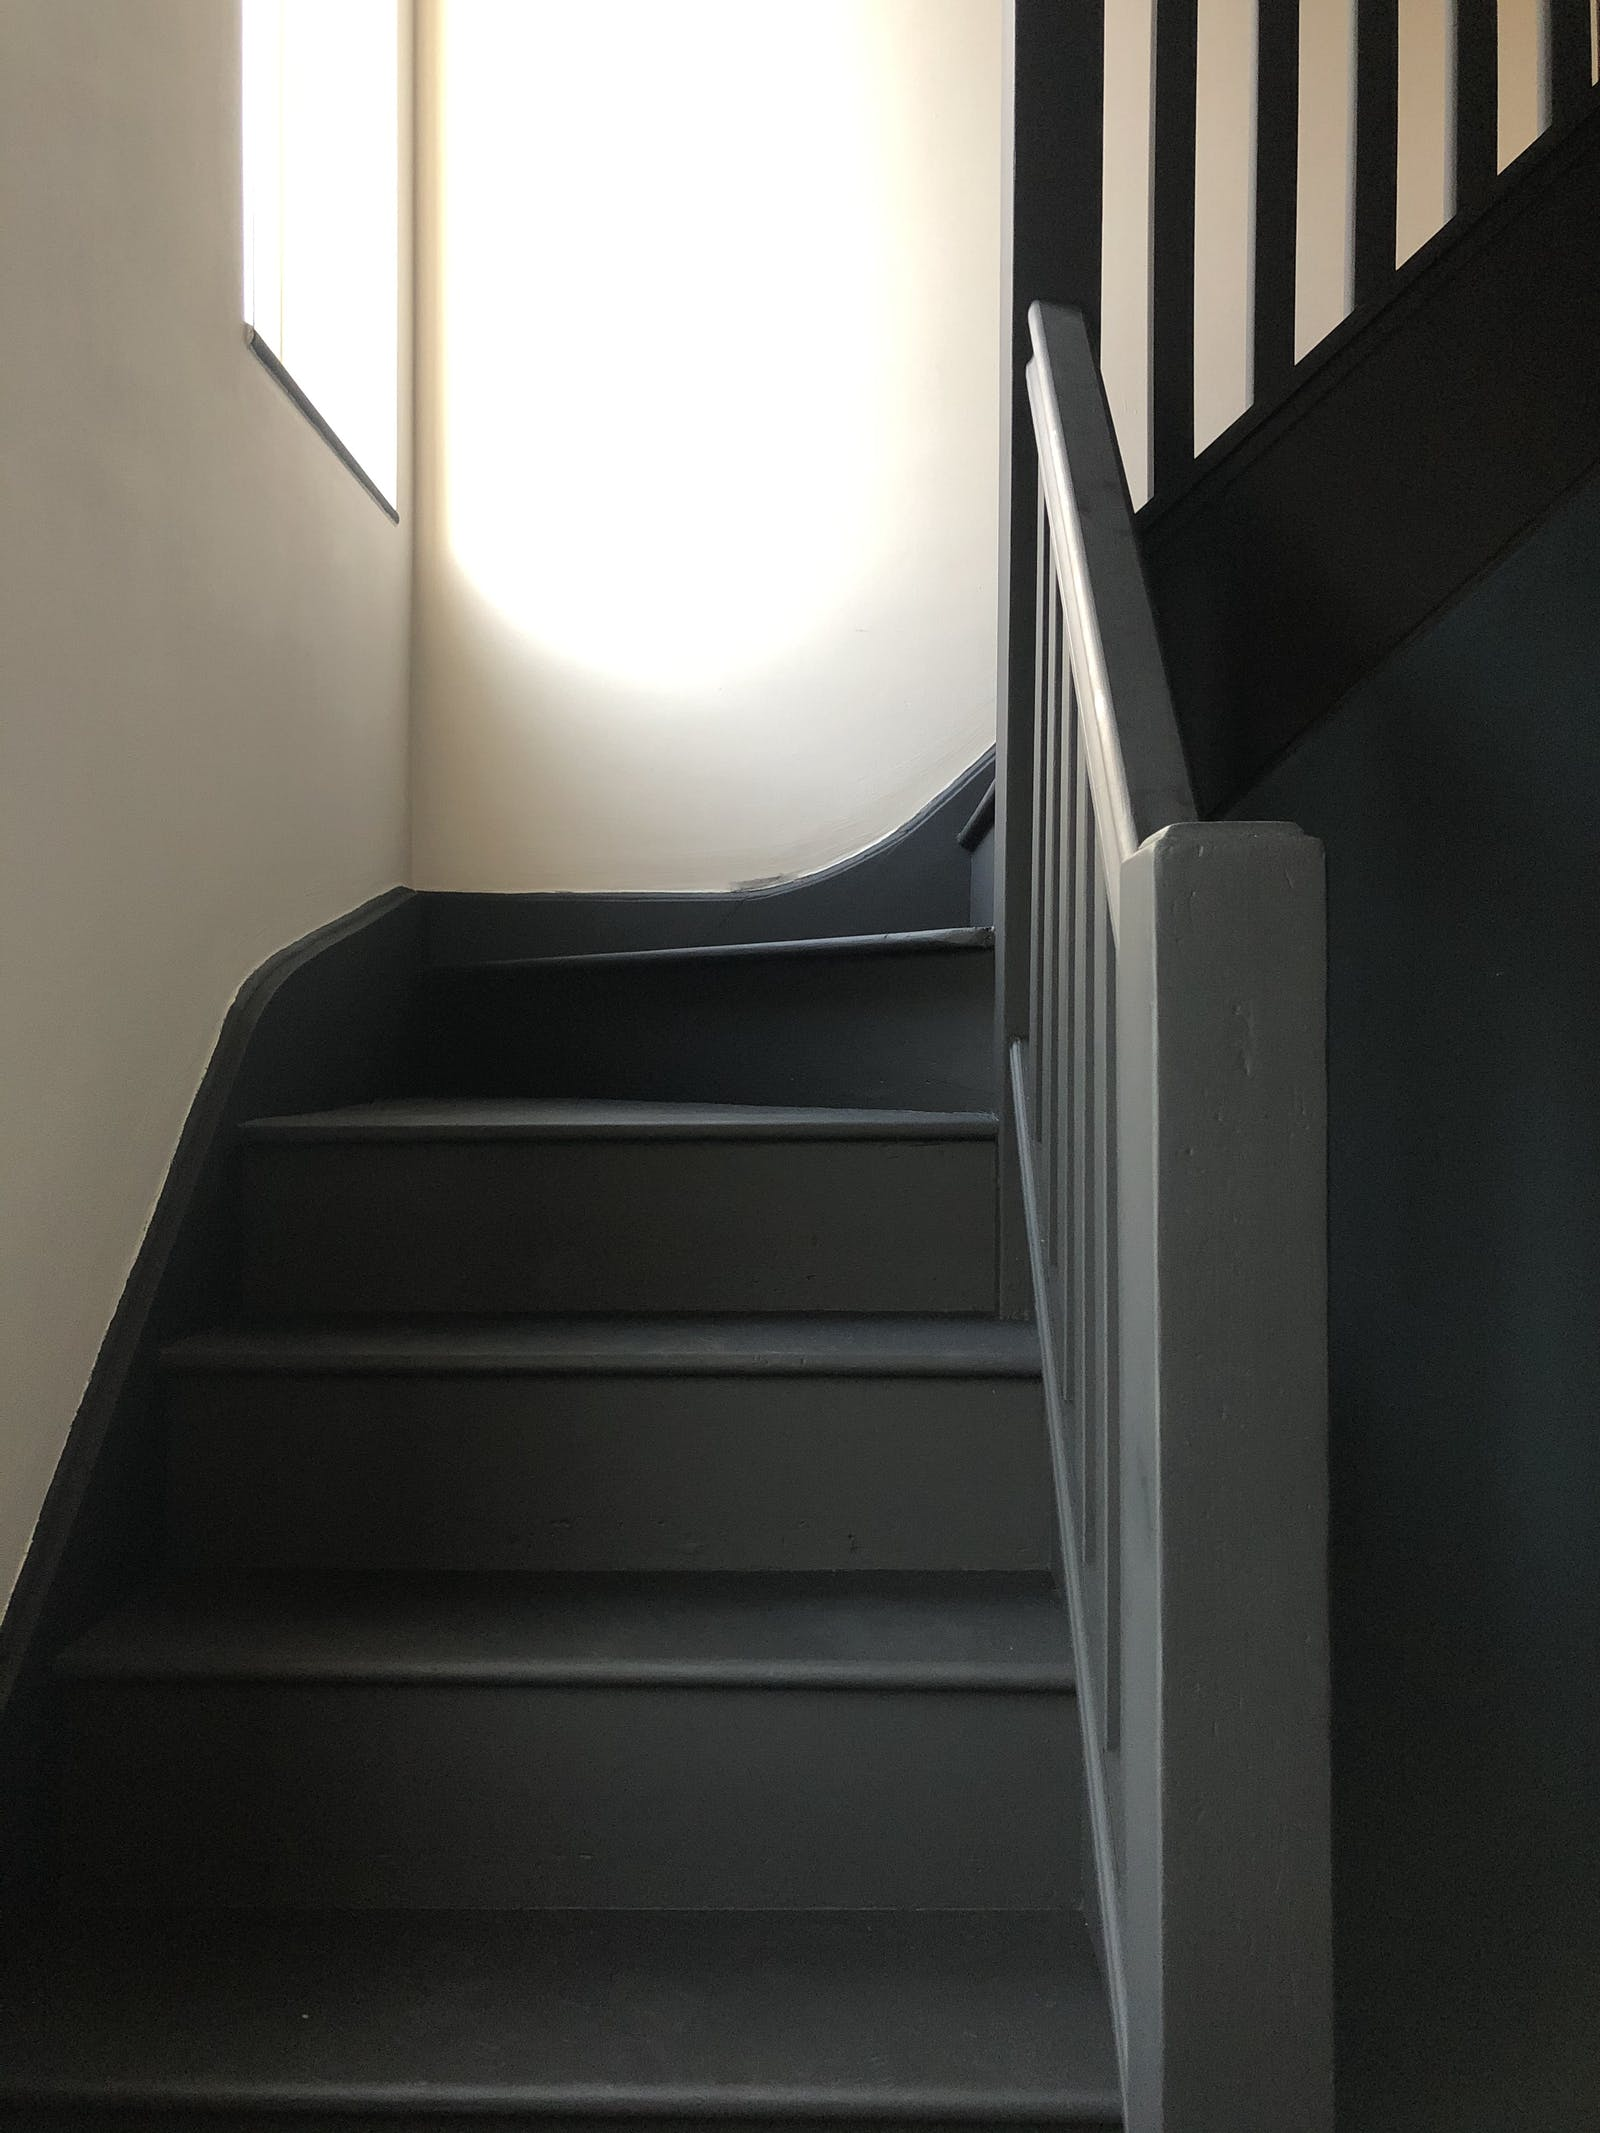 Staircase painted a matt Black 02, with white walls